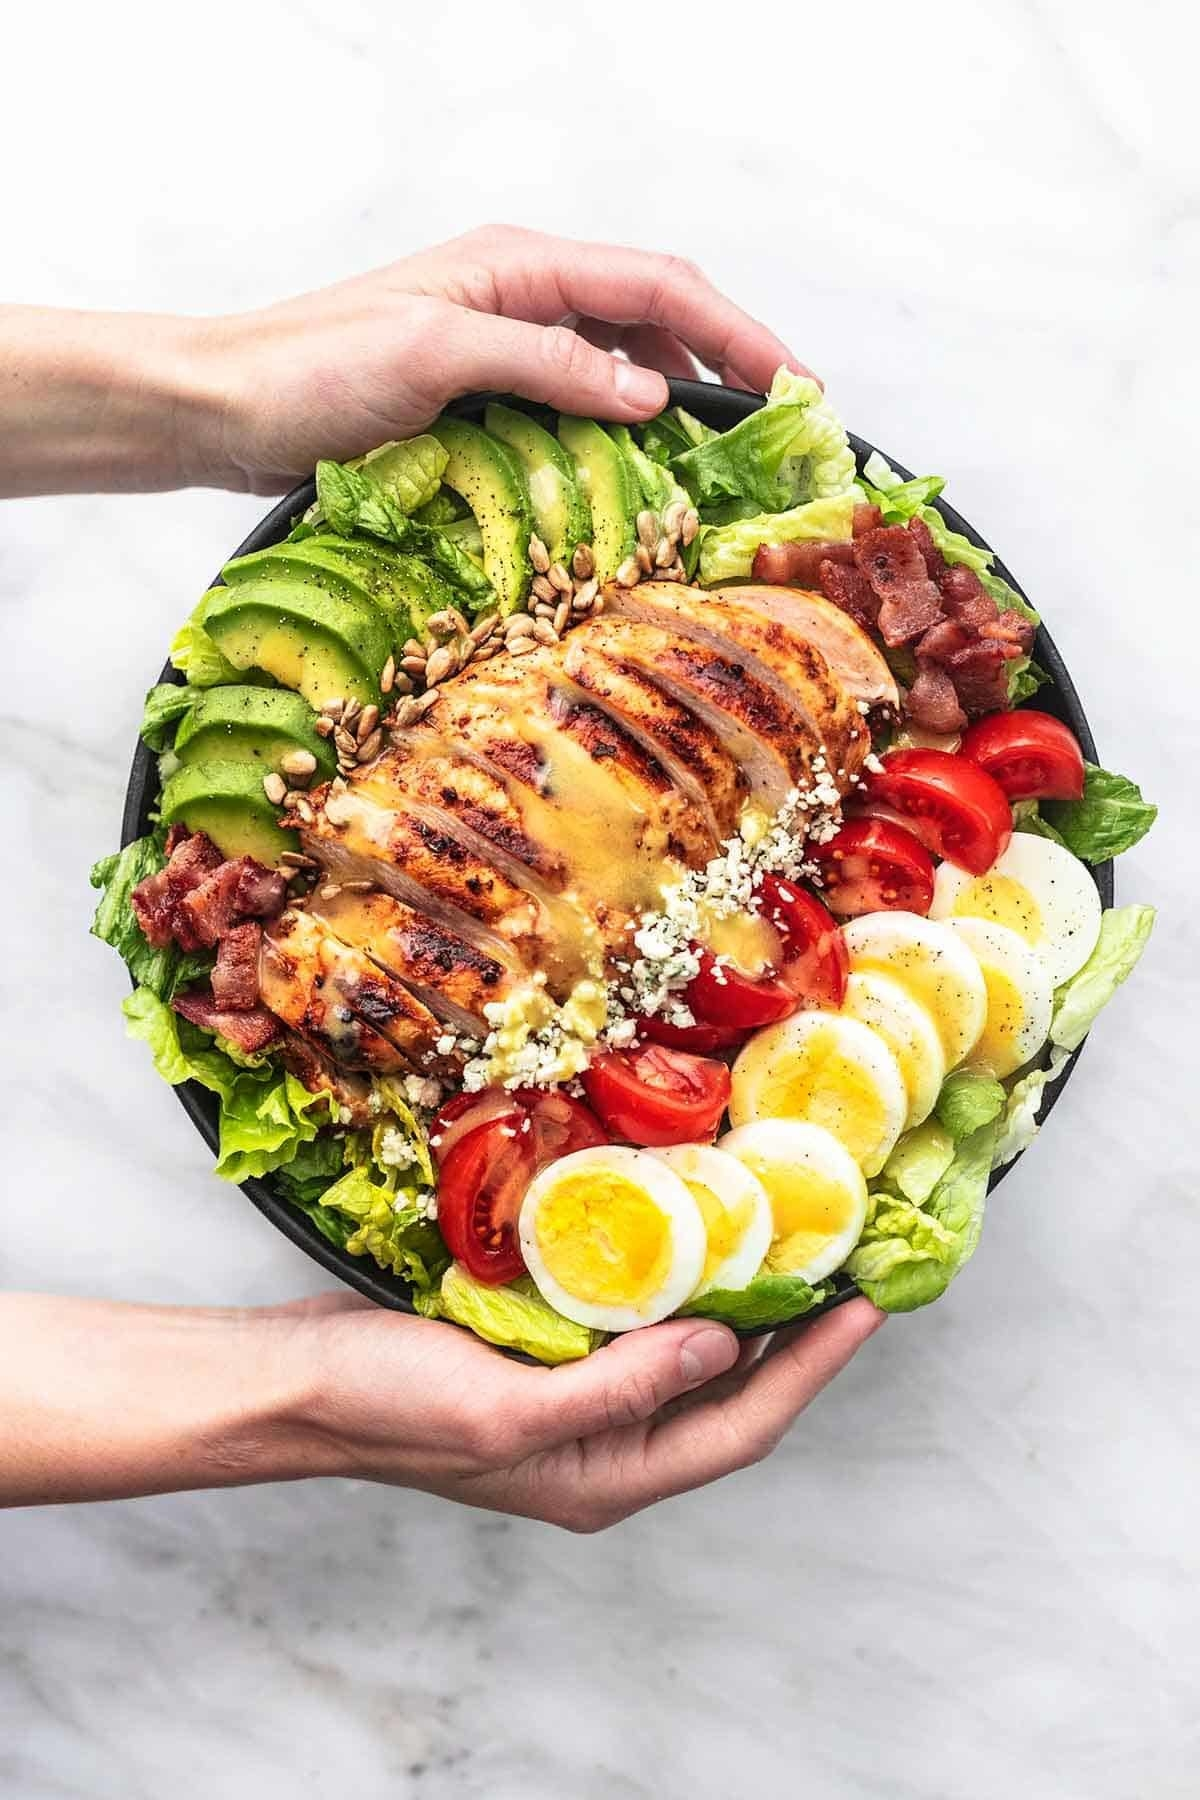 A large salad bowl, filled with shredded greens and topped with chicken, sliced tomatoes, sliced eggs, avocado, and corn.